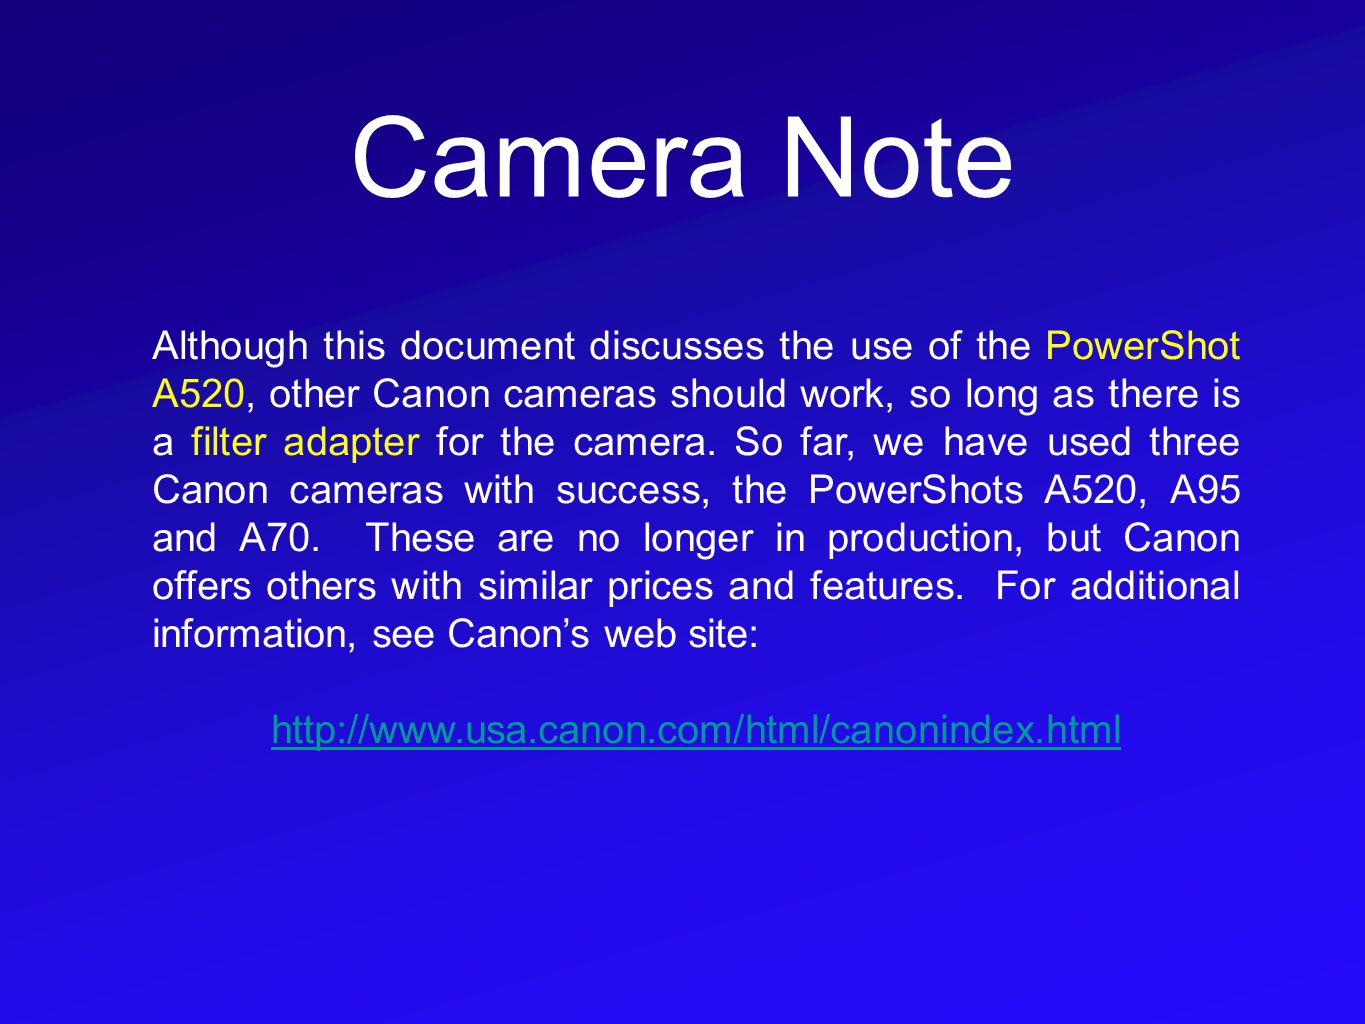 Camera Note Although this document discusses the use of the PowerShot A520, other Canon cameras should work, so long as there is a filter adapter for the camera.